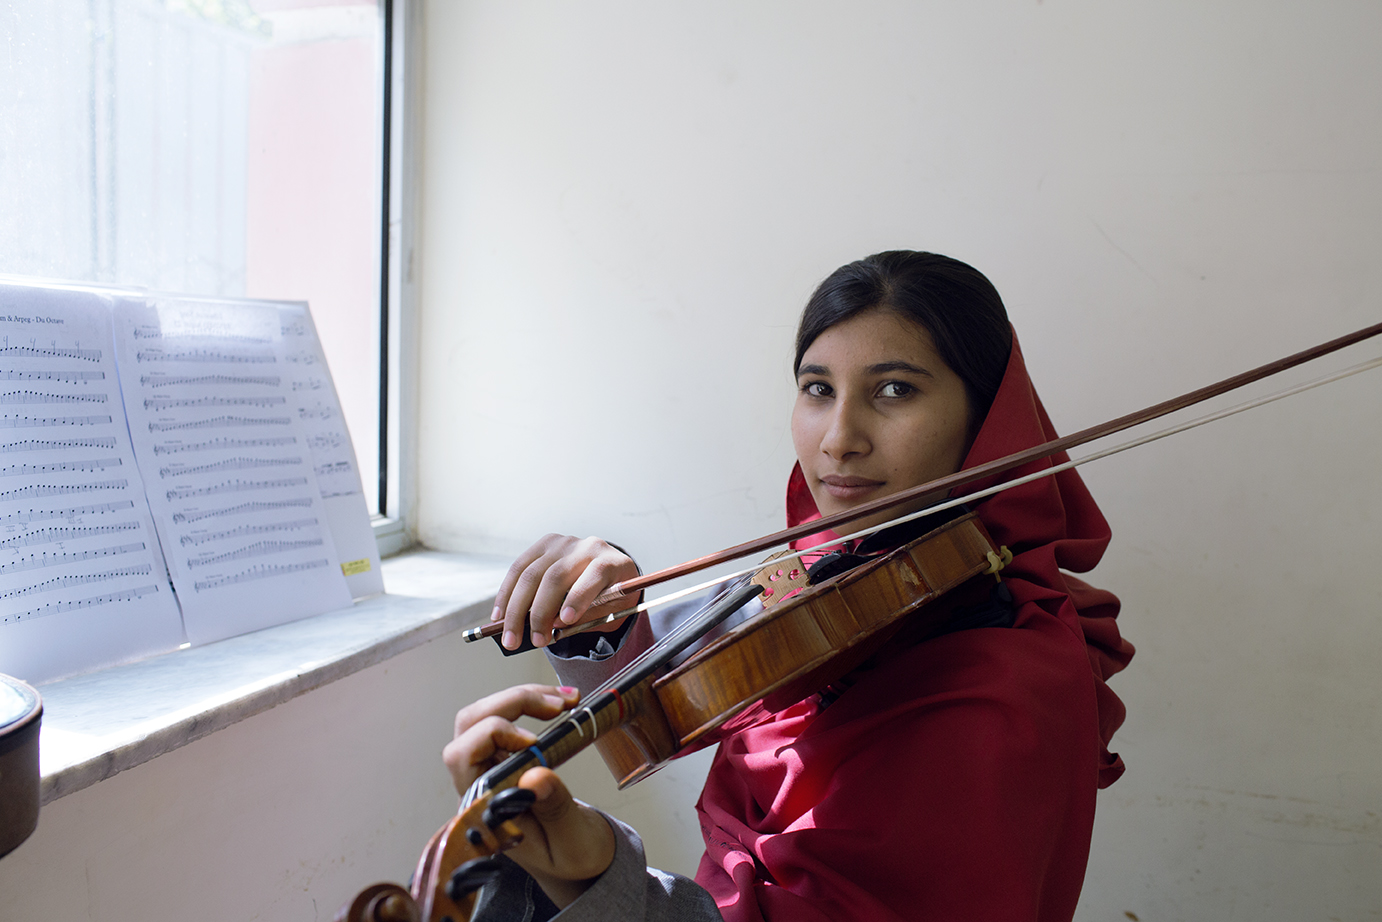 A young woman practices the violin.